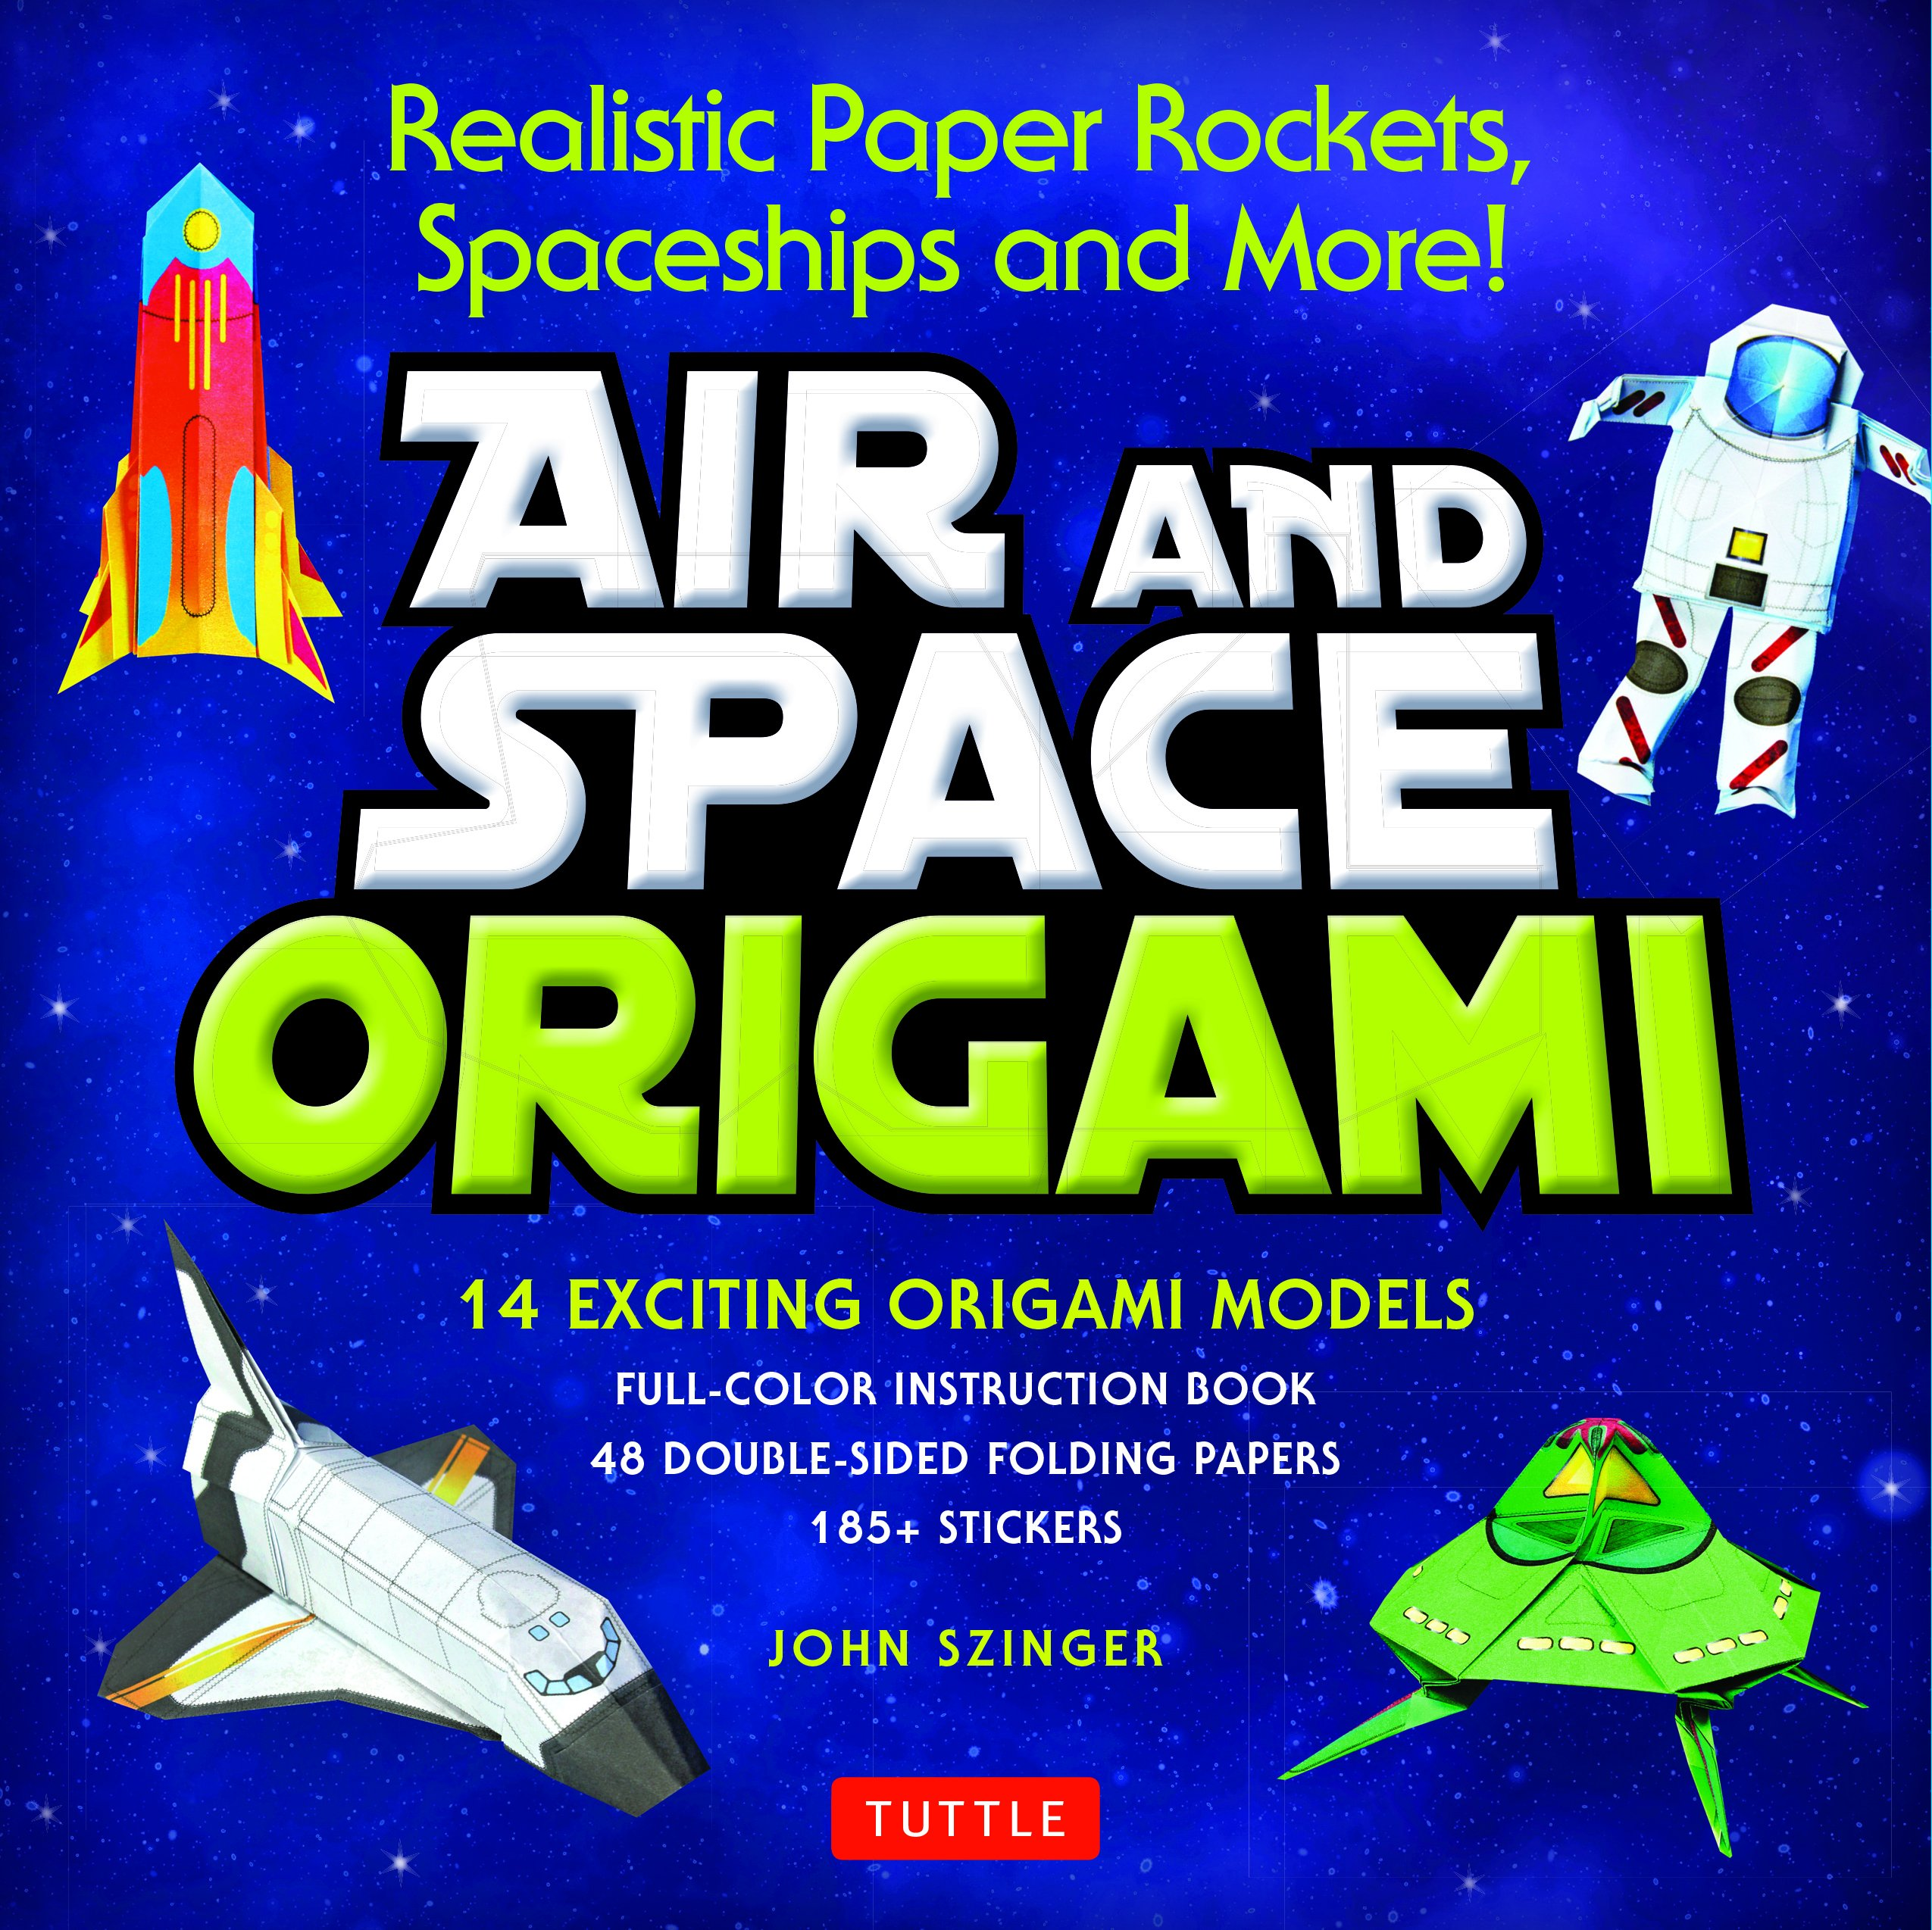 88da16089 Air and Space Origami Kit  Realistic Paper Rockets